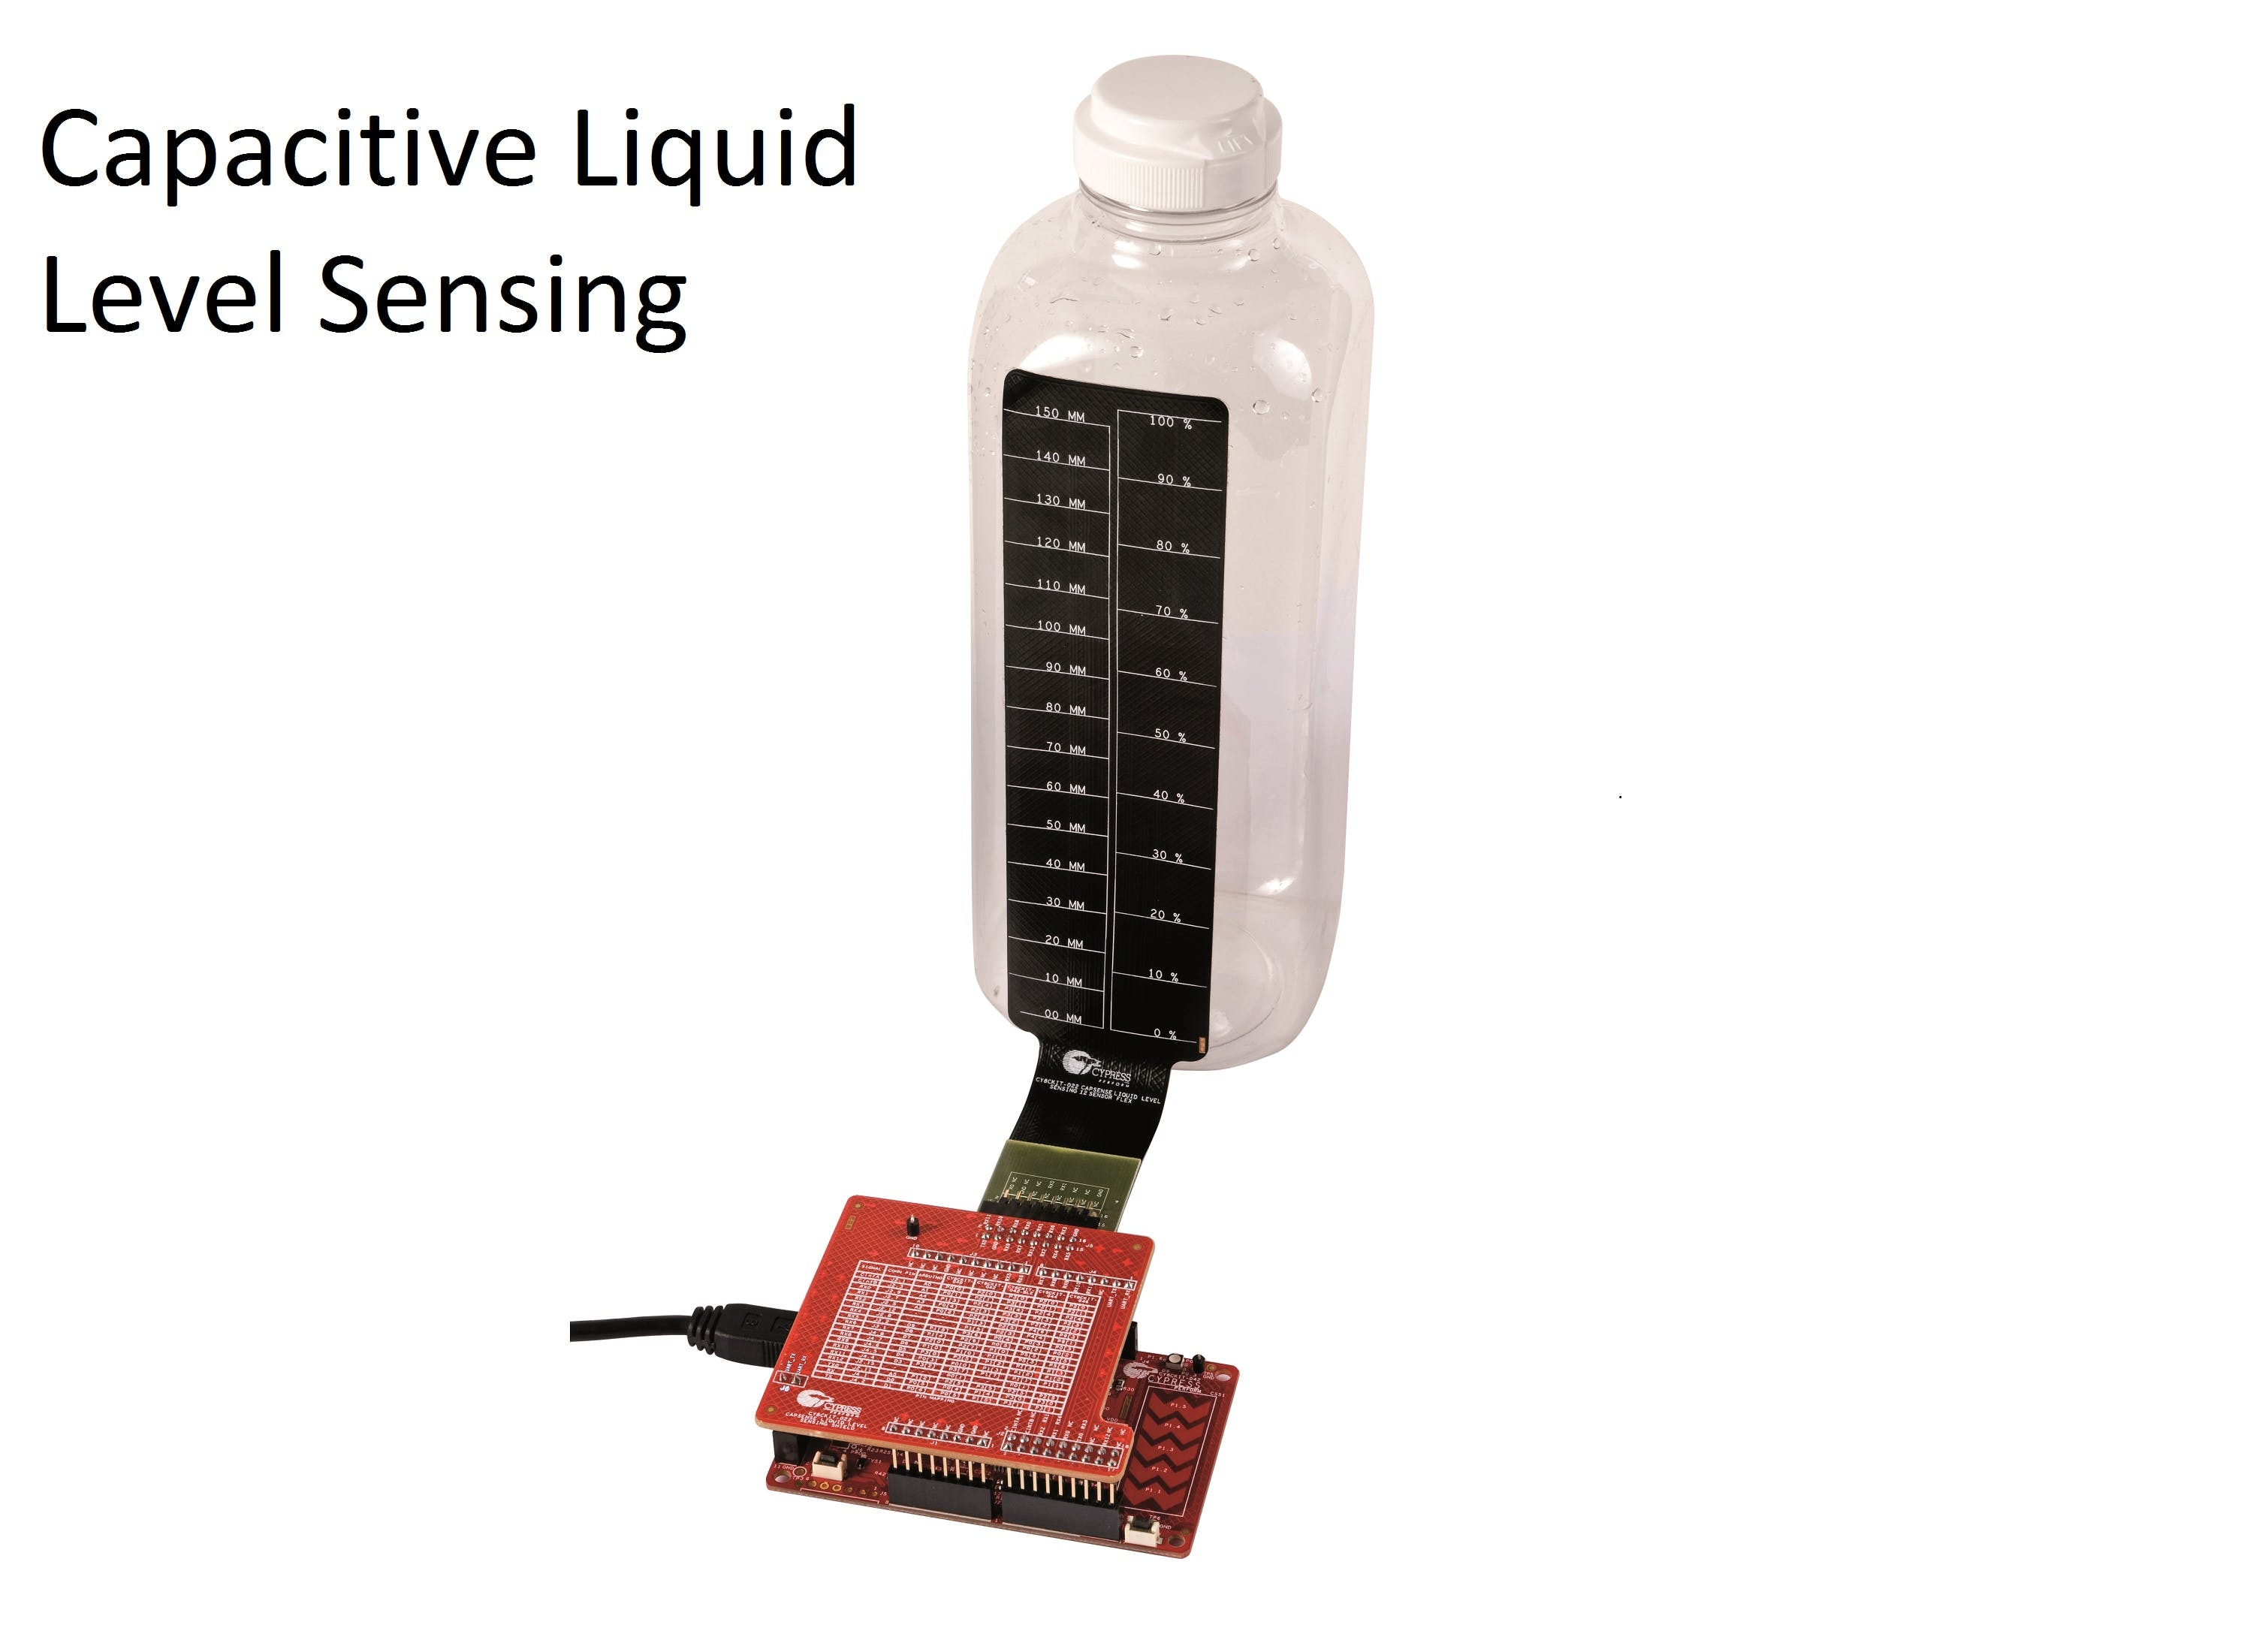 Contactless Liquid Level Sensing using CapSense